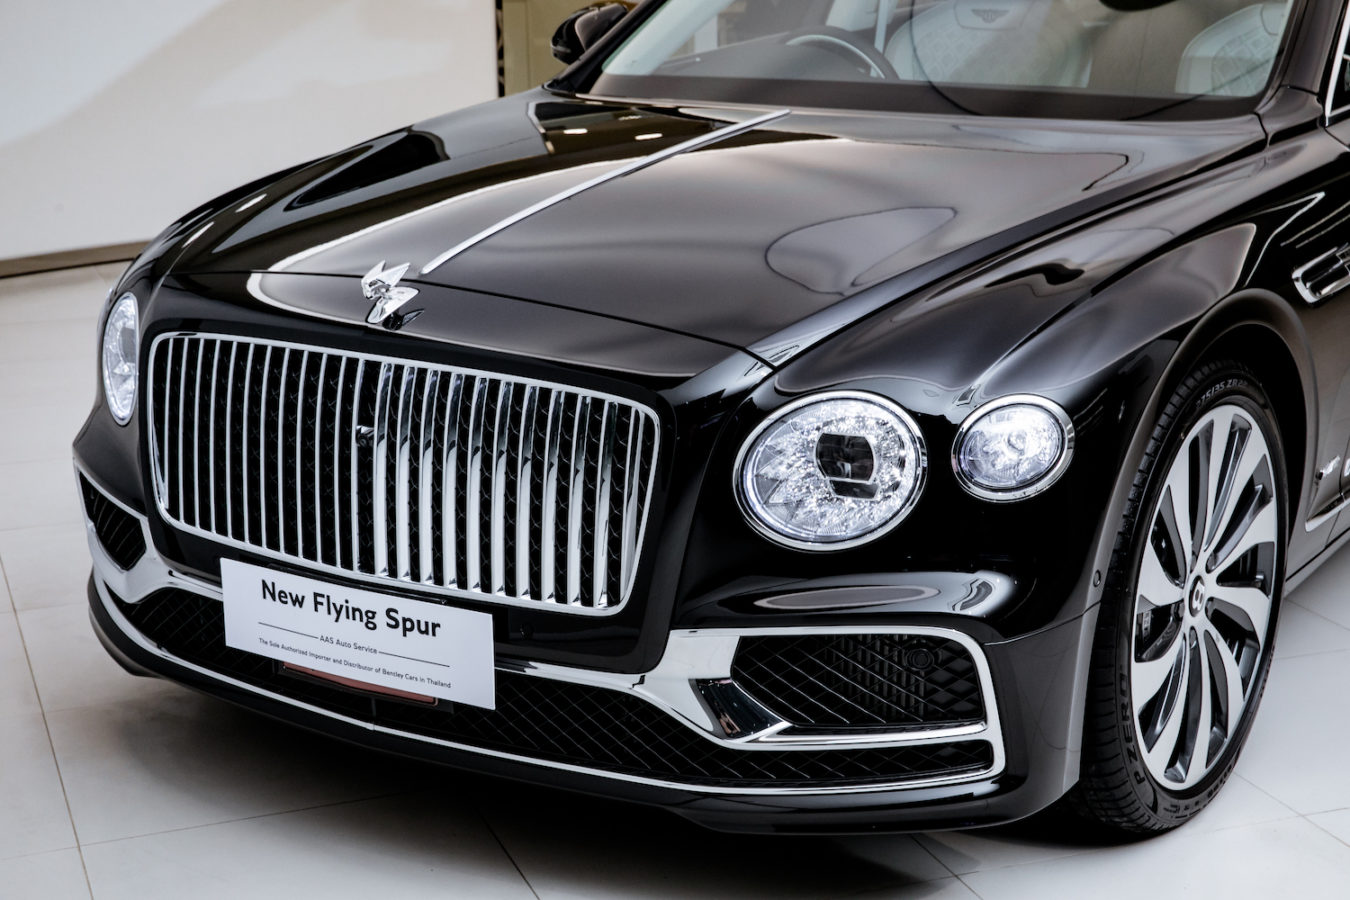 REGISTER NOW for a Free Test-Drive of The All-New Bentley Flying Spur